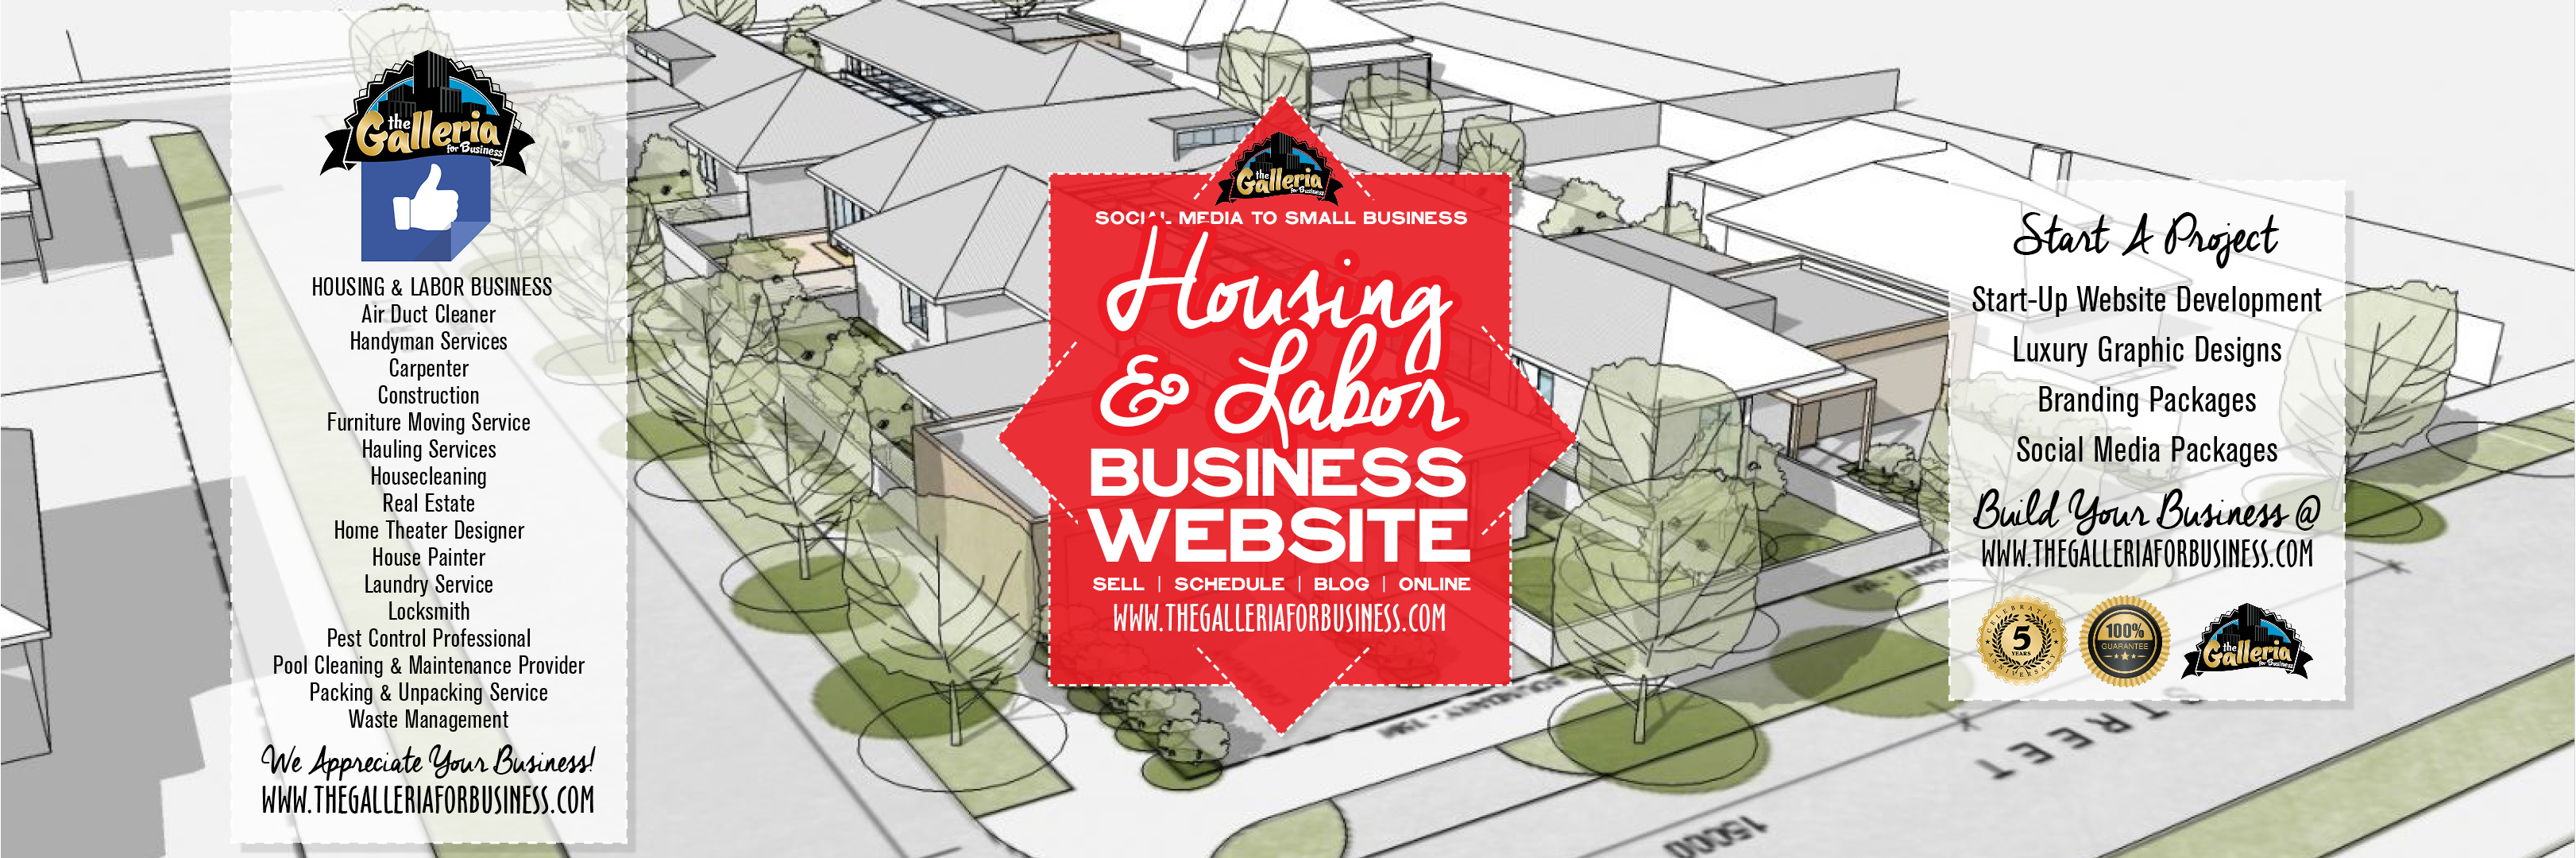 Housing & Labor Business